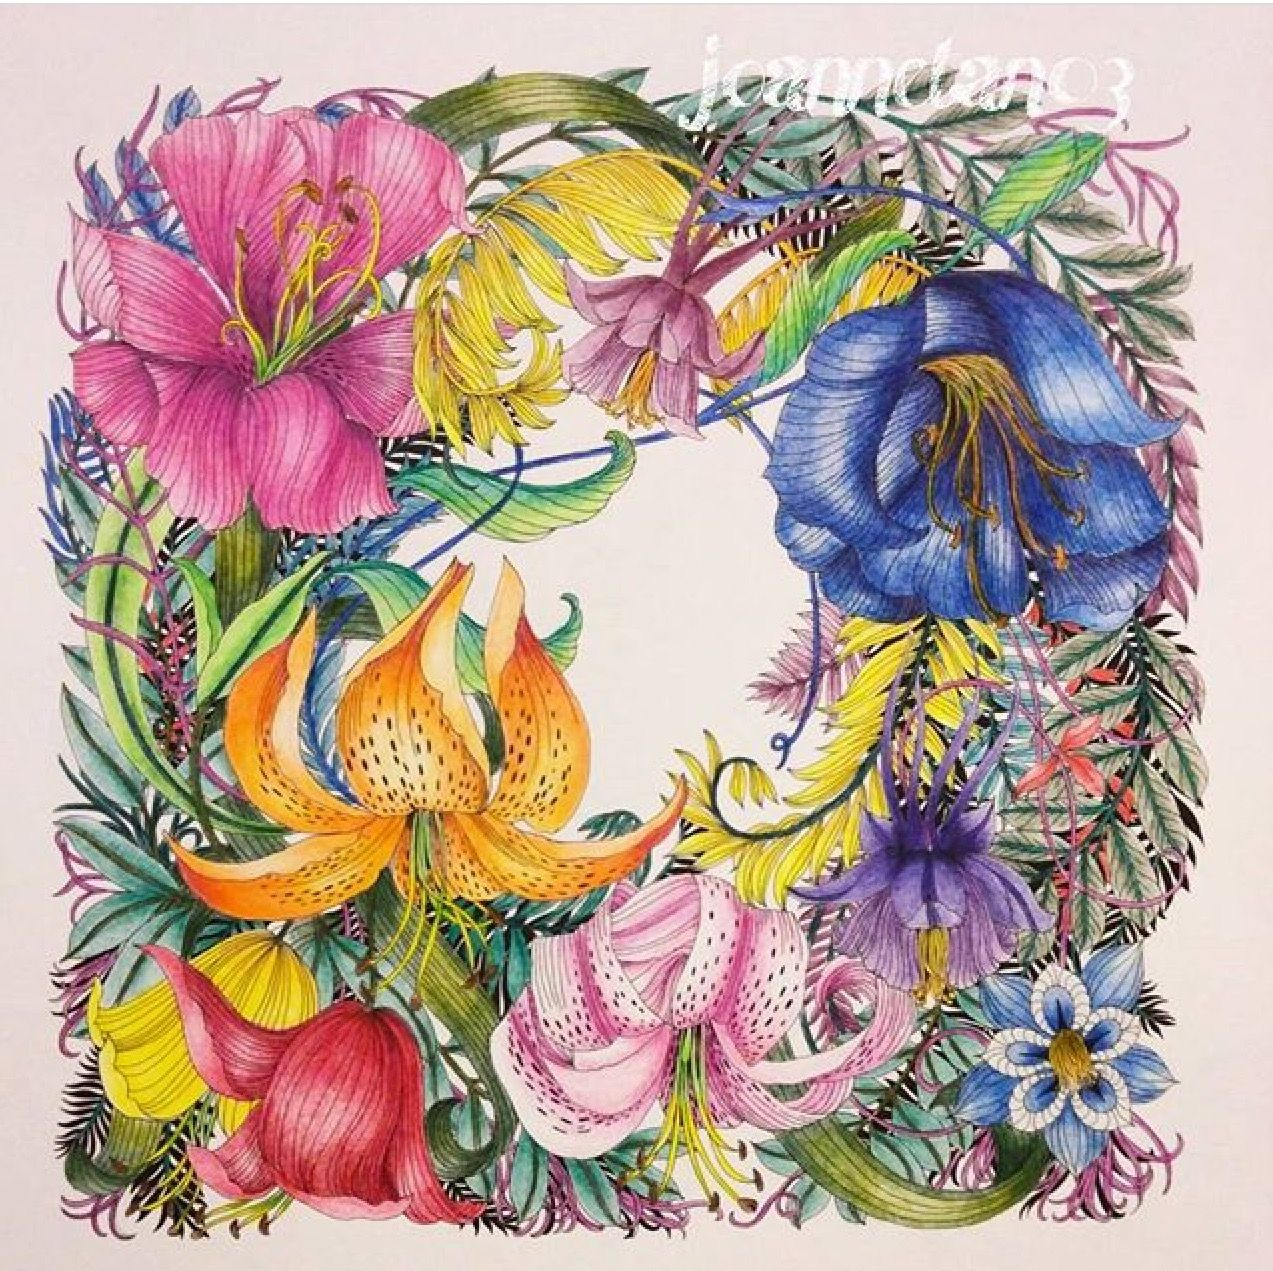 Coloring Pages With Examples. Inspirational Coloring Pages  floribunda leiladuly coloringbooks